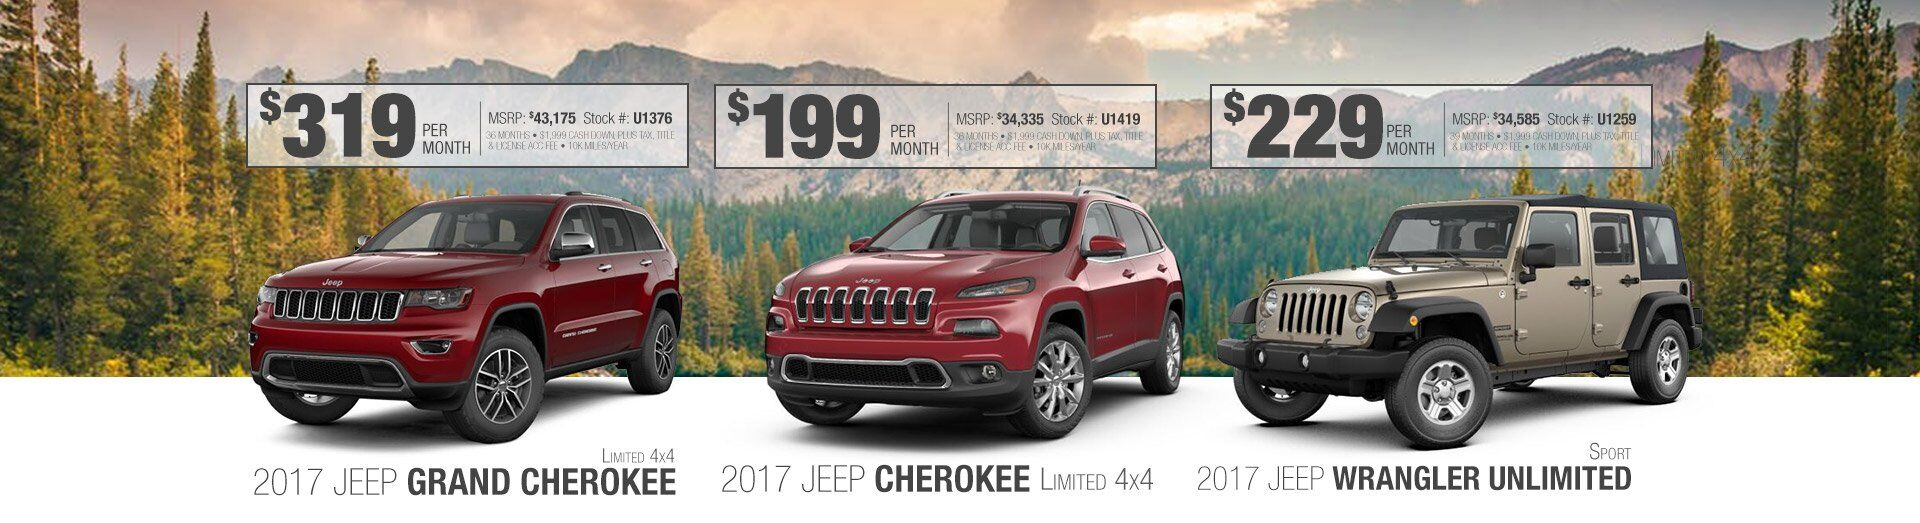 2017 Grand Cherokee-Cherokee-Wrangler Unlimited